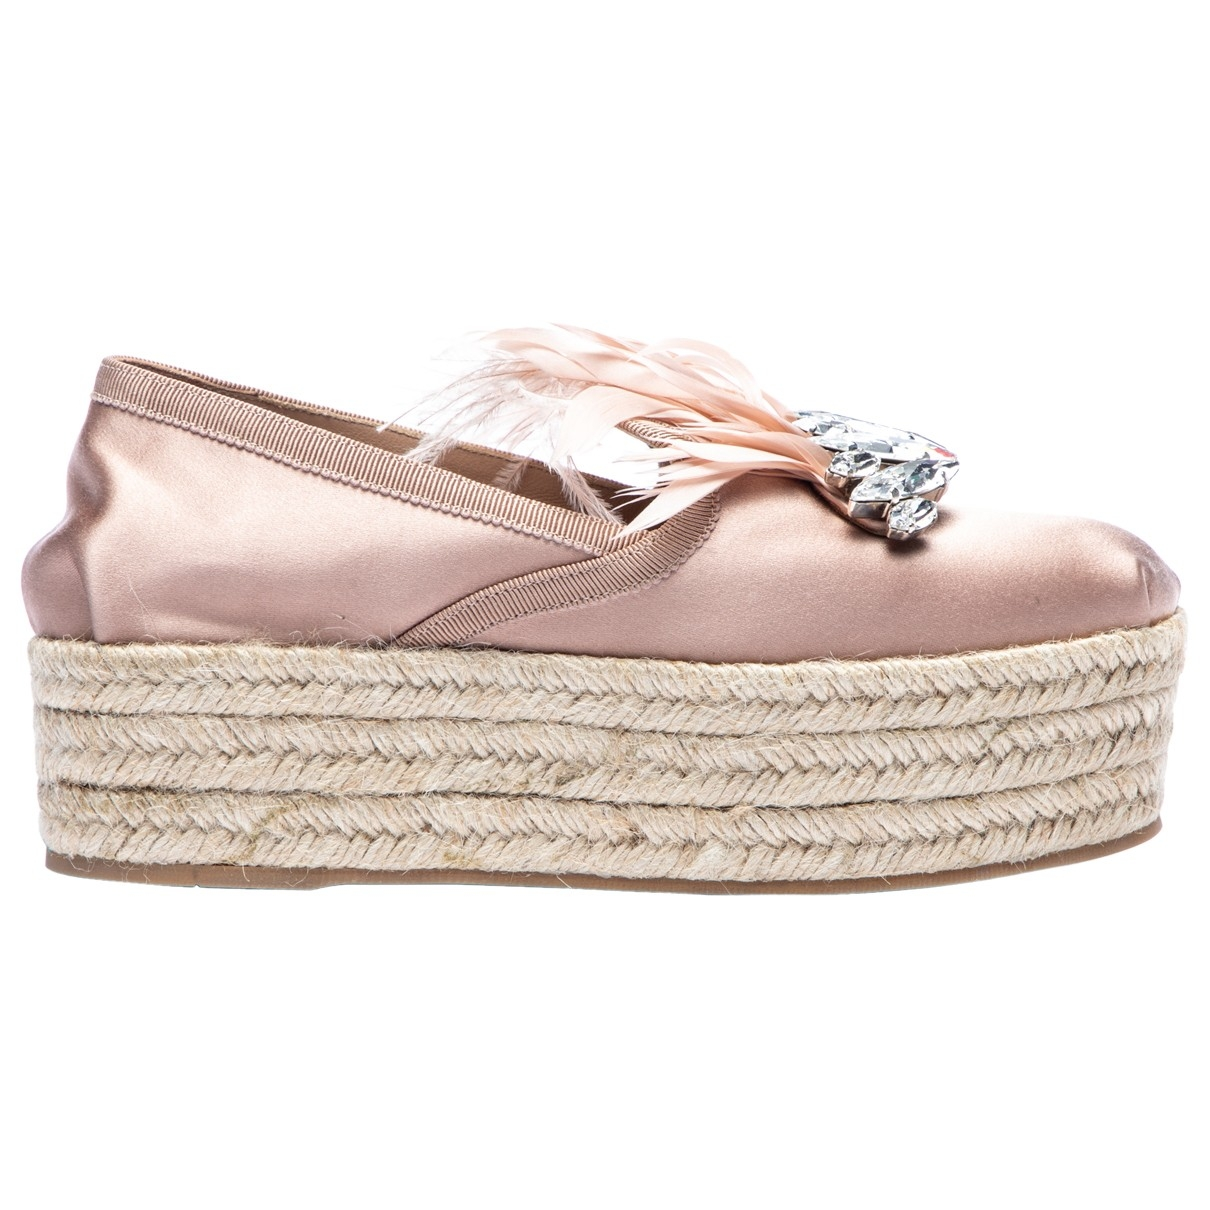 Miu Miu \N Pink Cloth Espadrilles for Women 34.5 EU